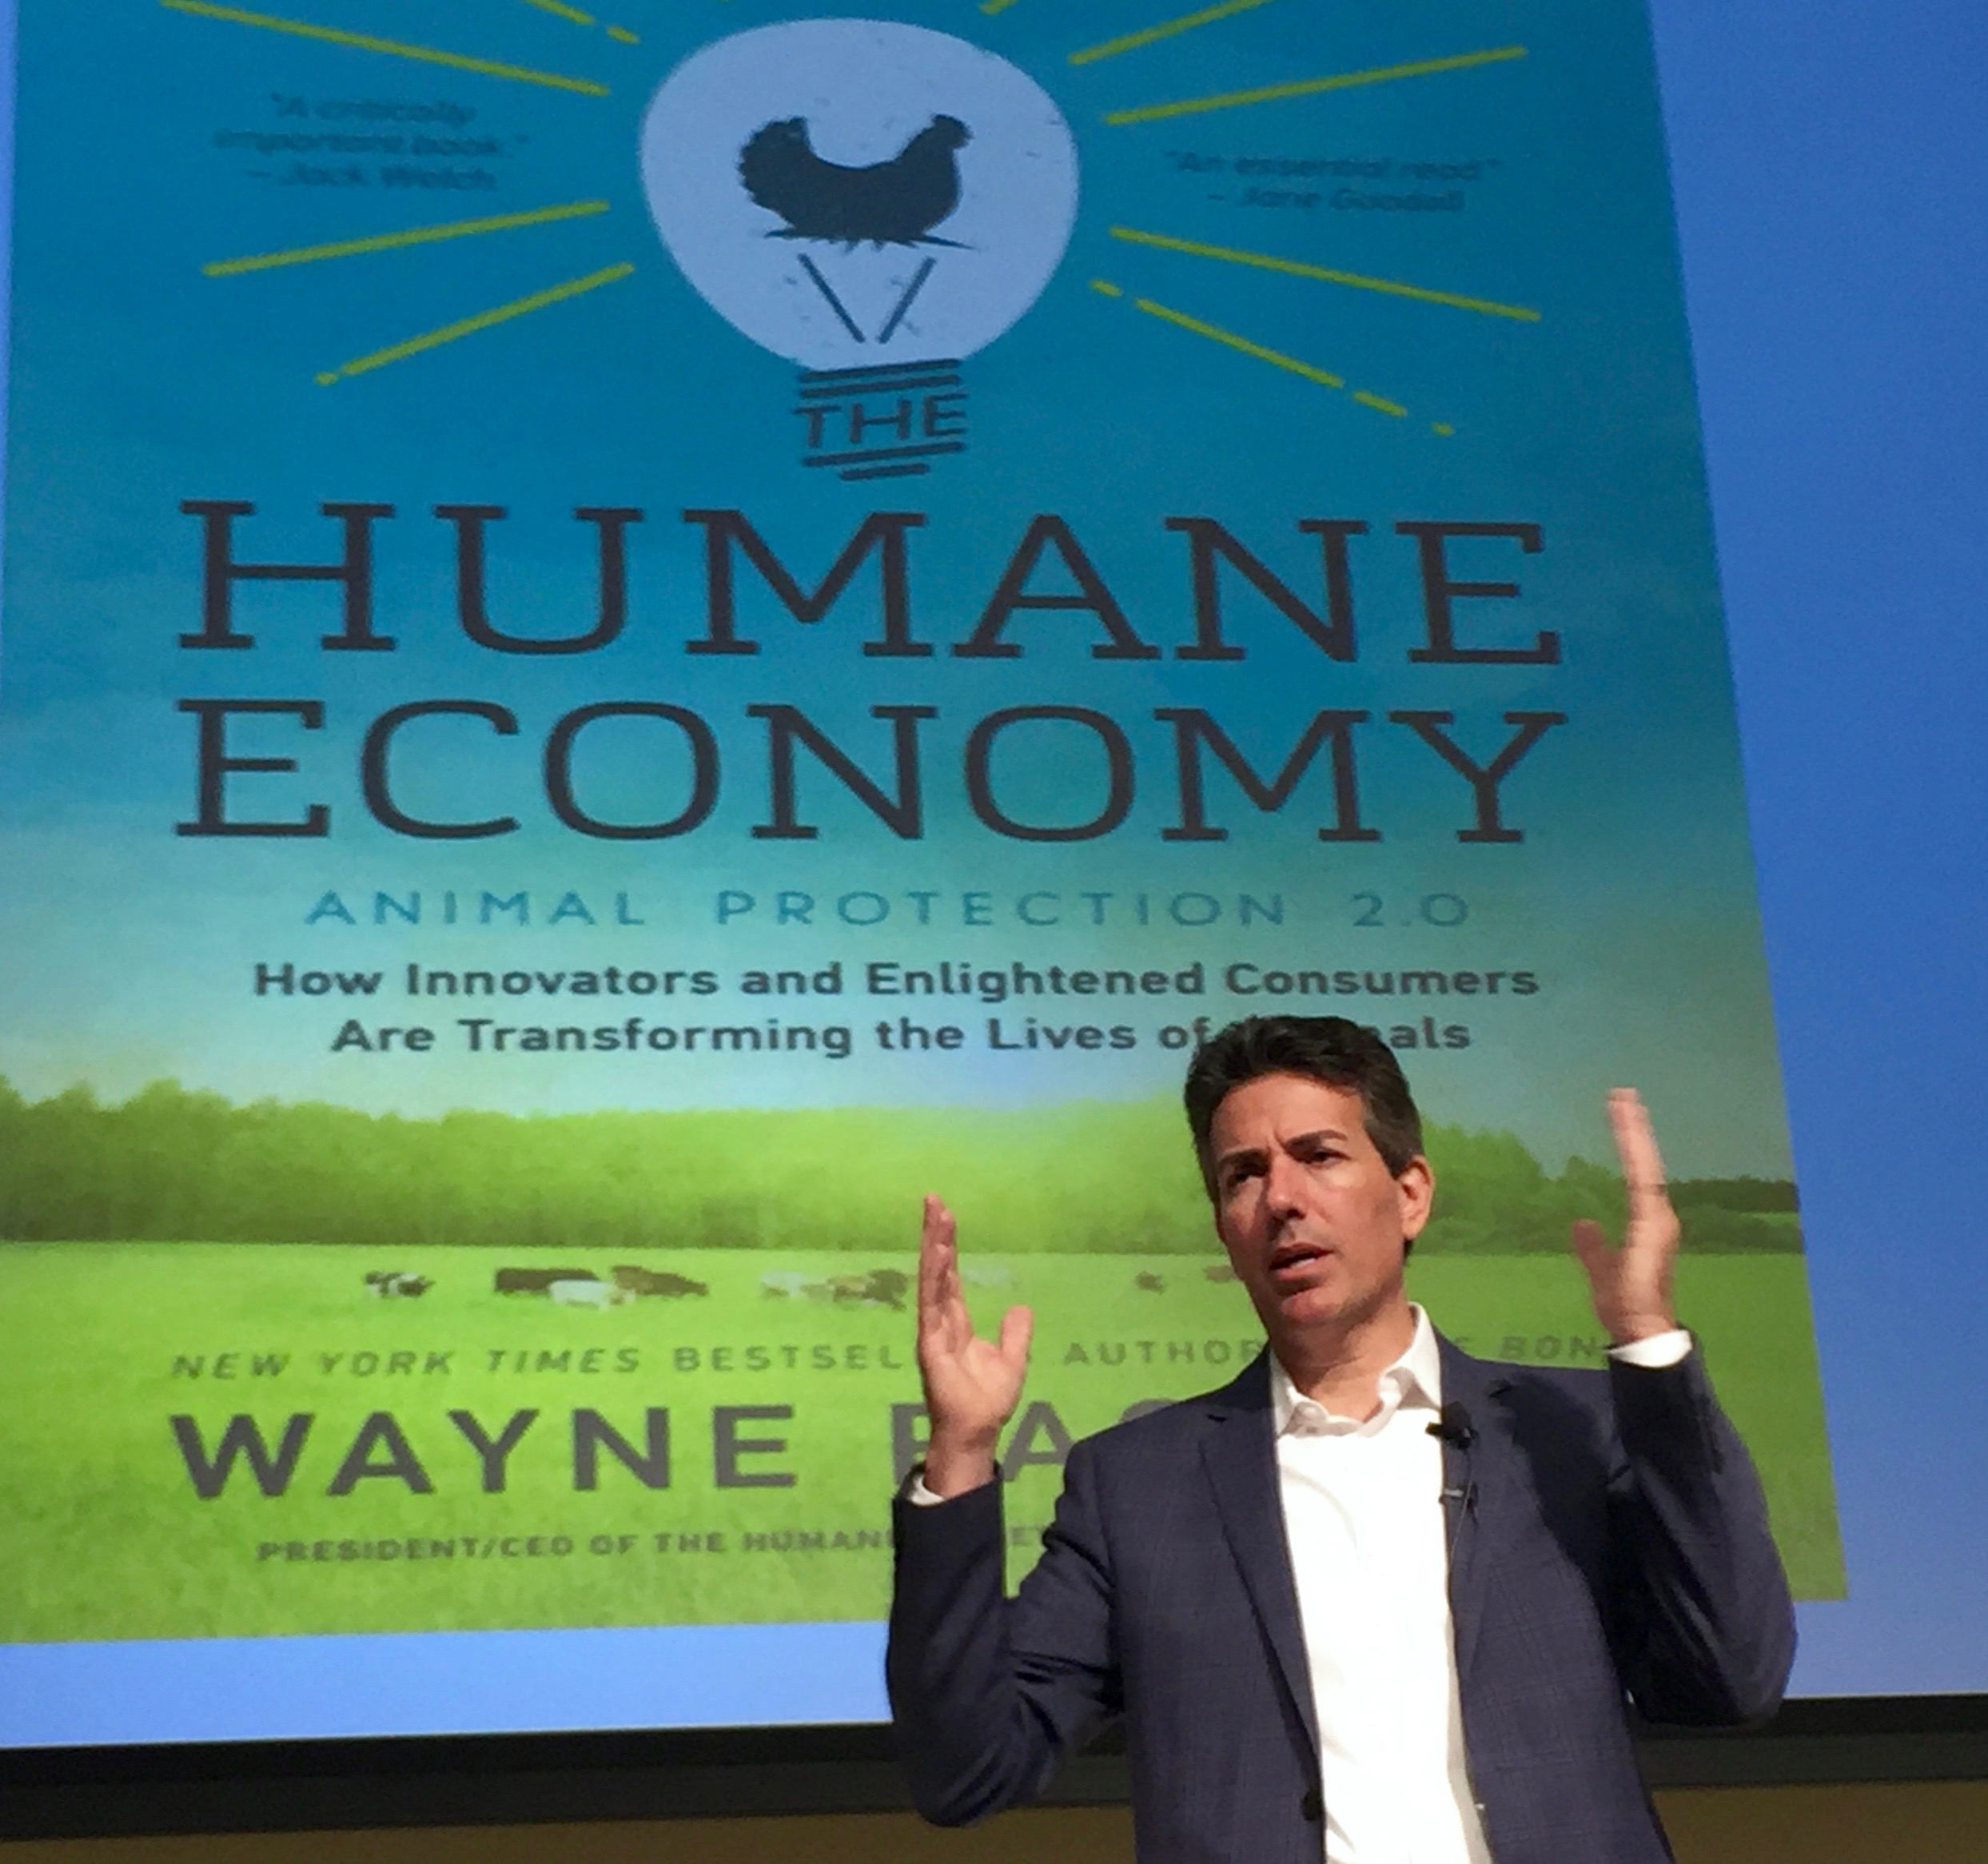 New York Times Best Selling Author Mr. Wayne Pacelle